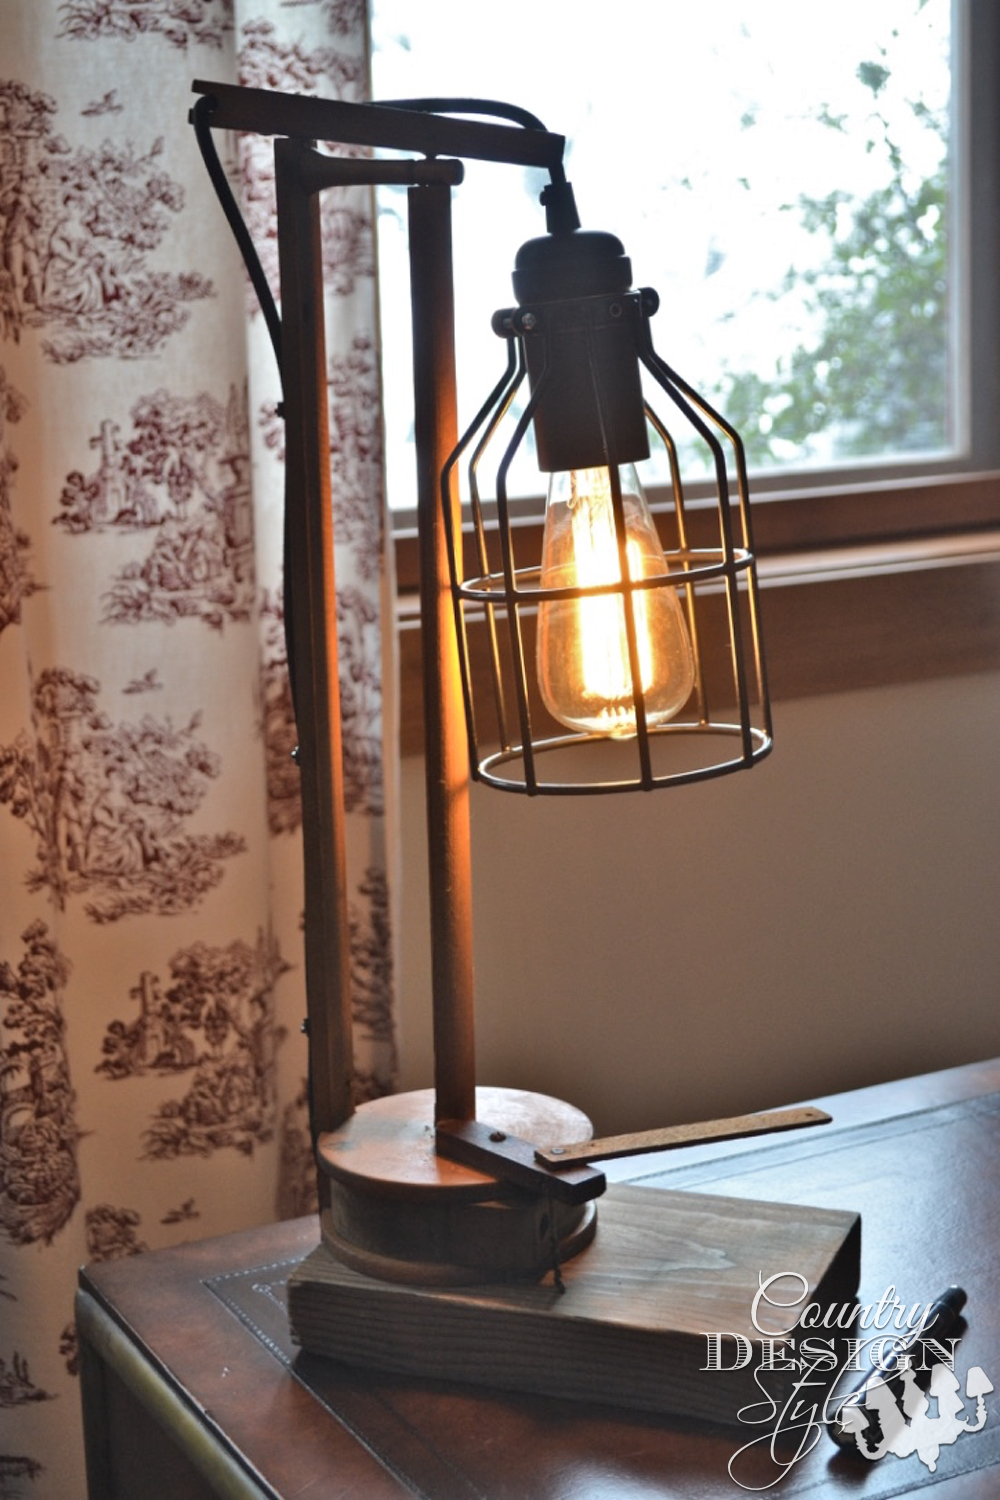 Vintage styled lamp | Country Design Style | countrydesignstyle.com